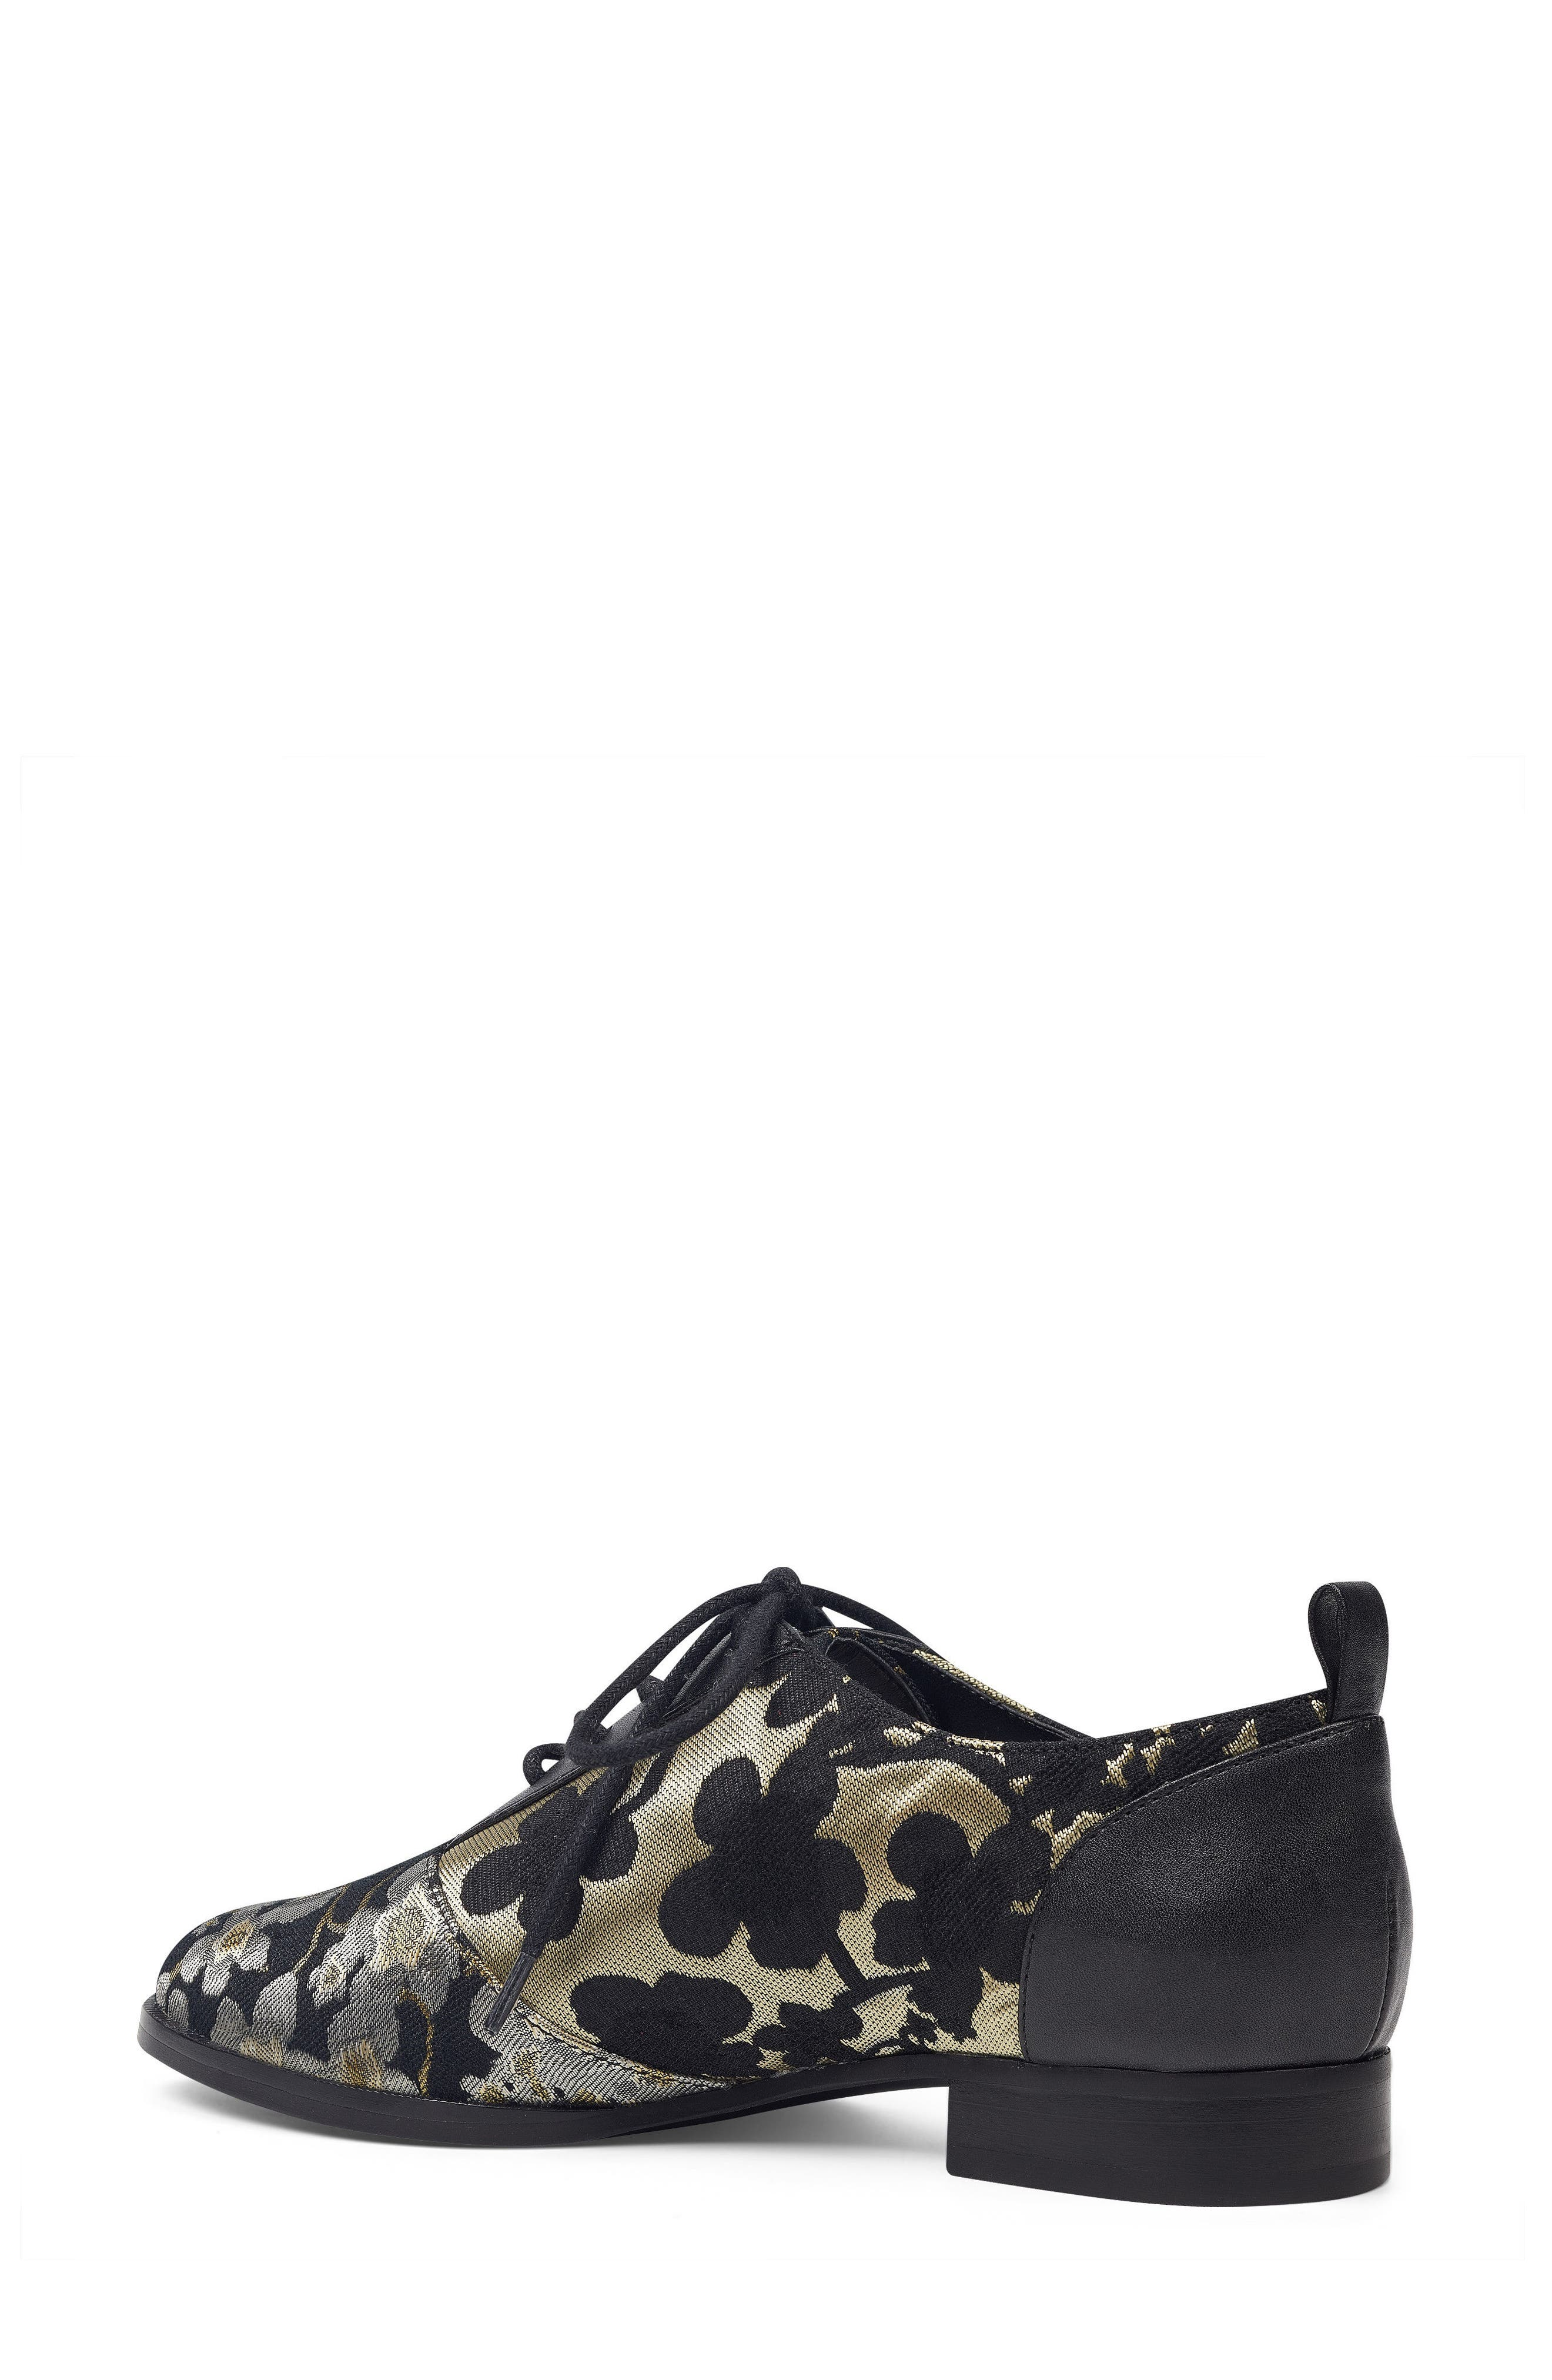 Hyida Lace-Up Oxford,                             Alternate thumbnail 2, color,                             001